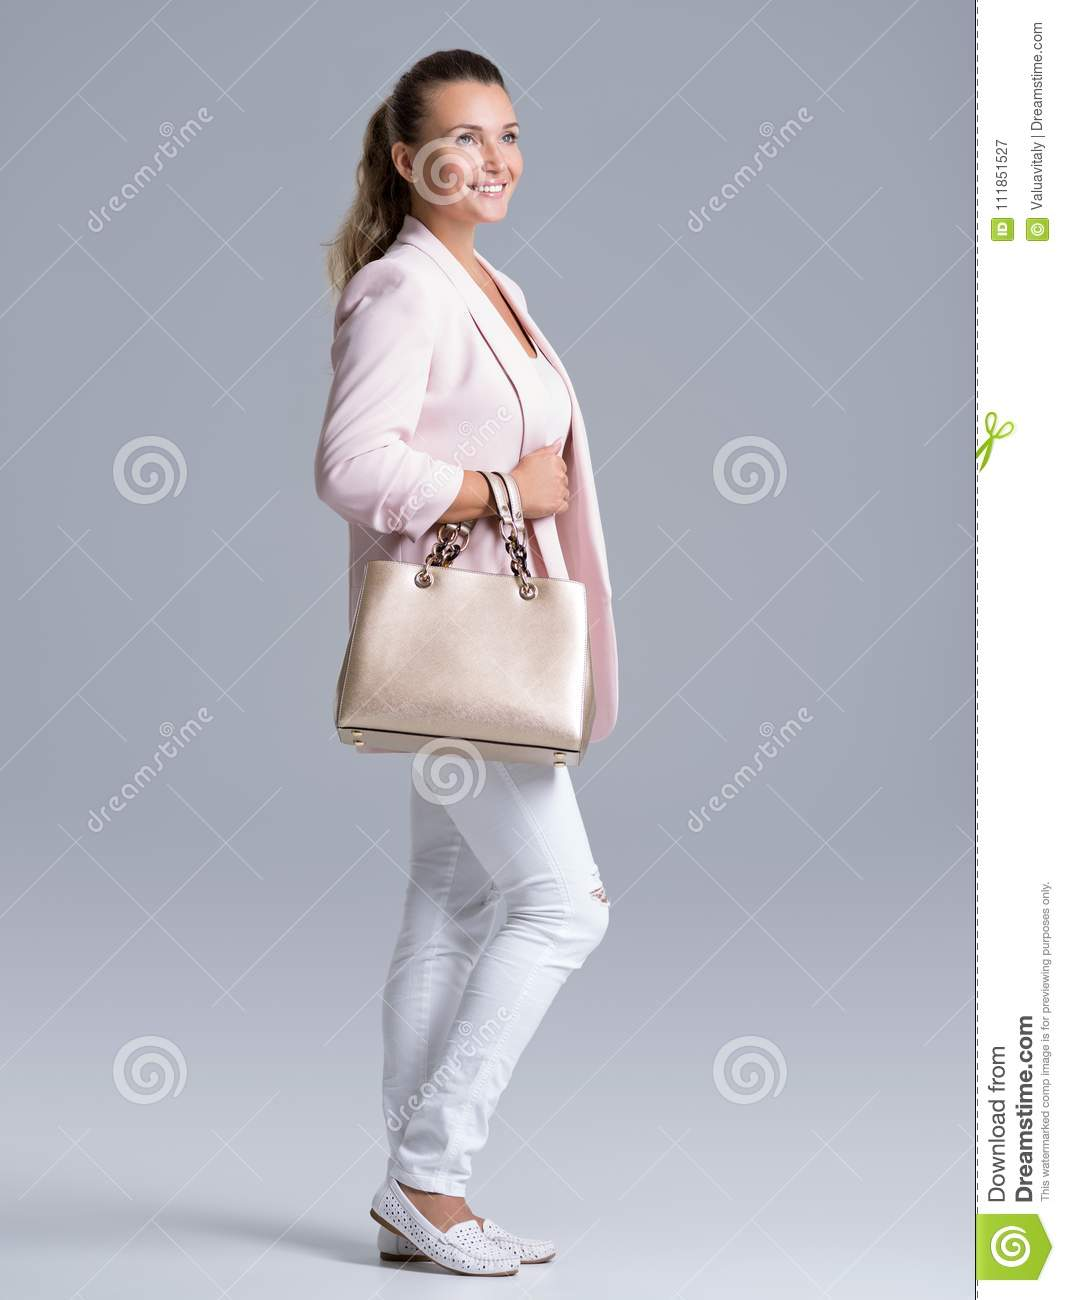 Portrait of an young happy woman with handbag